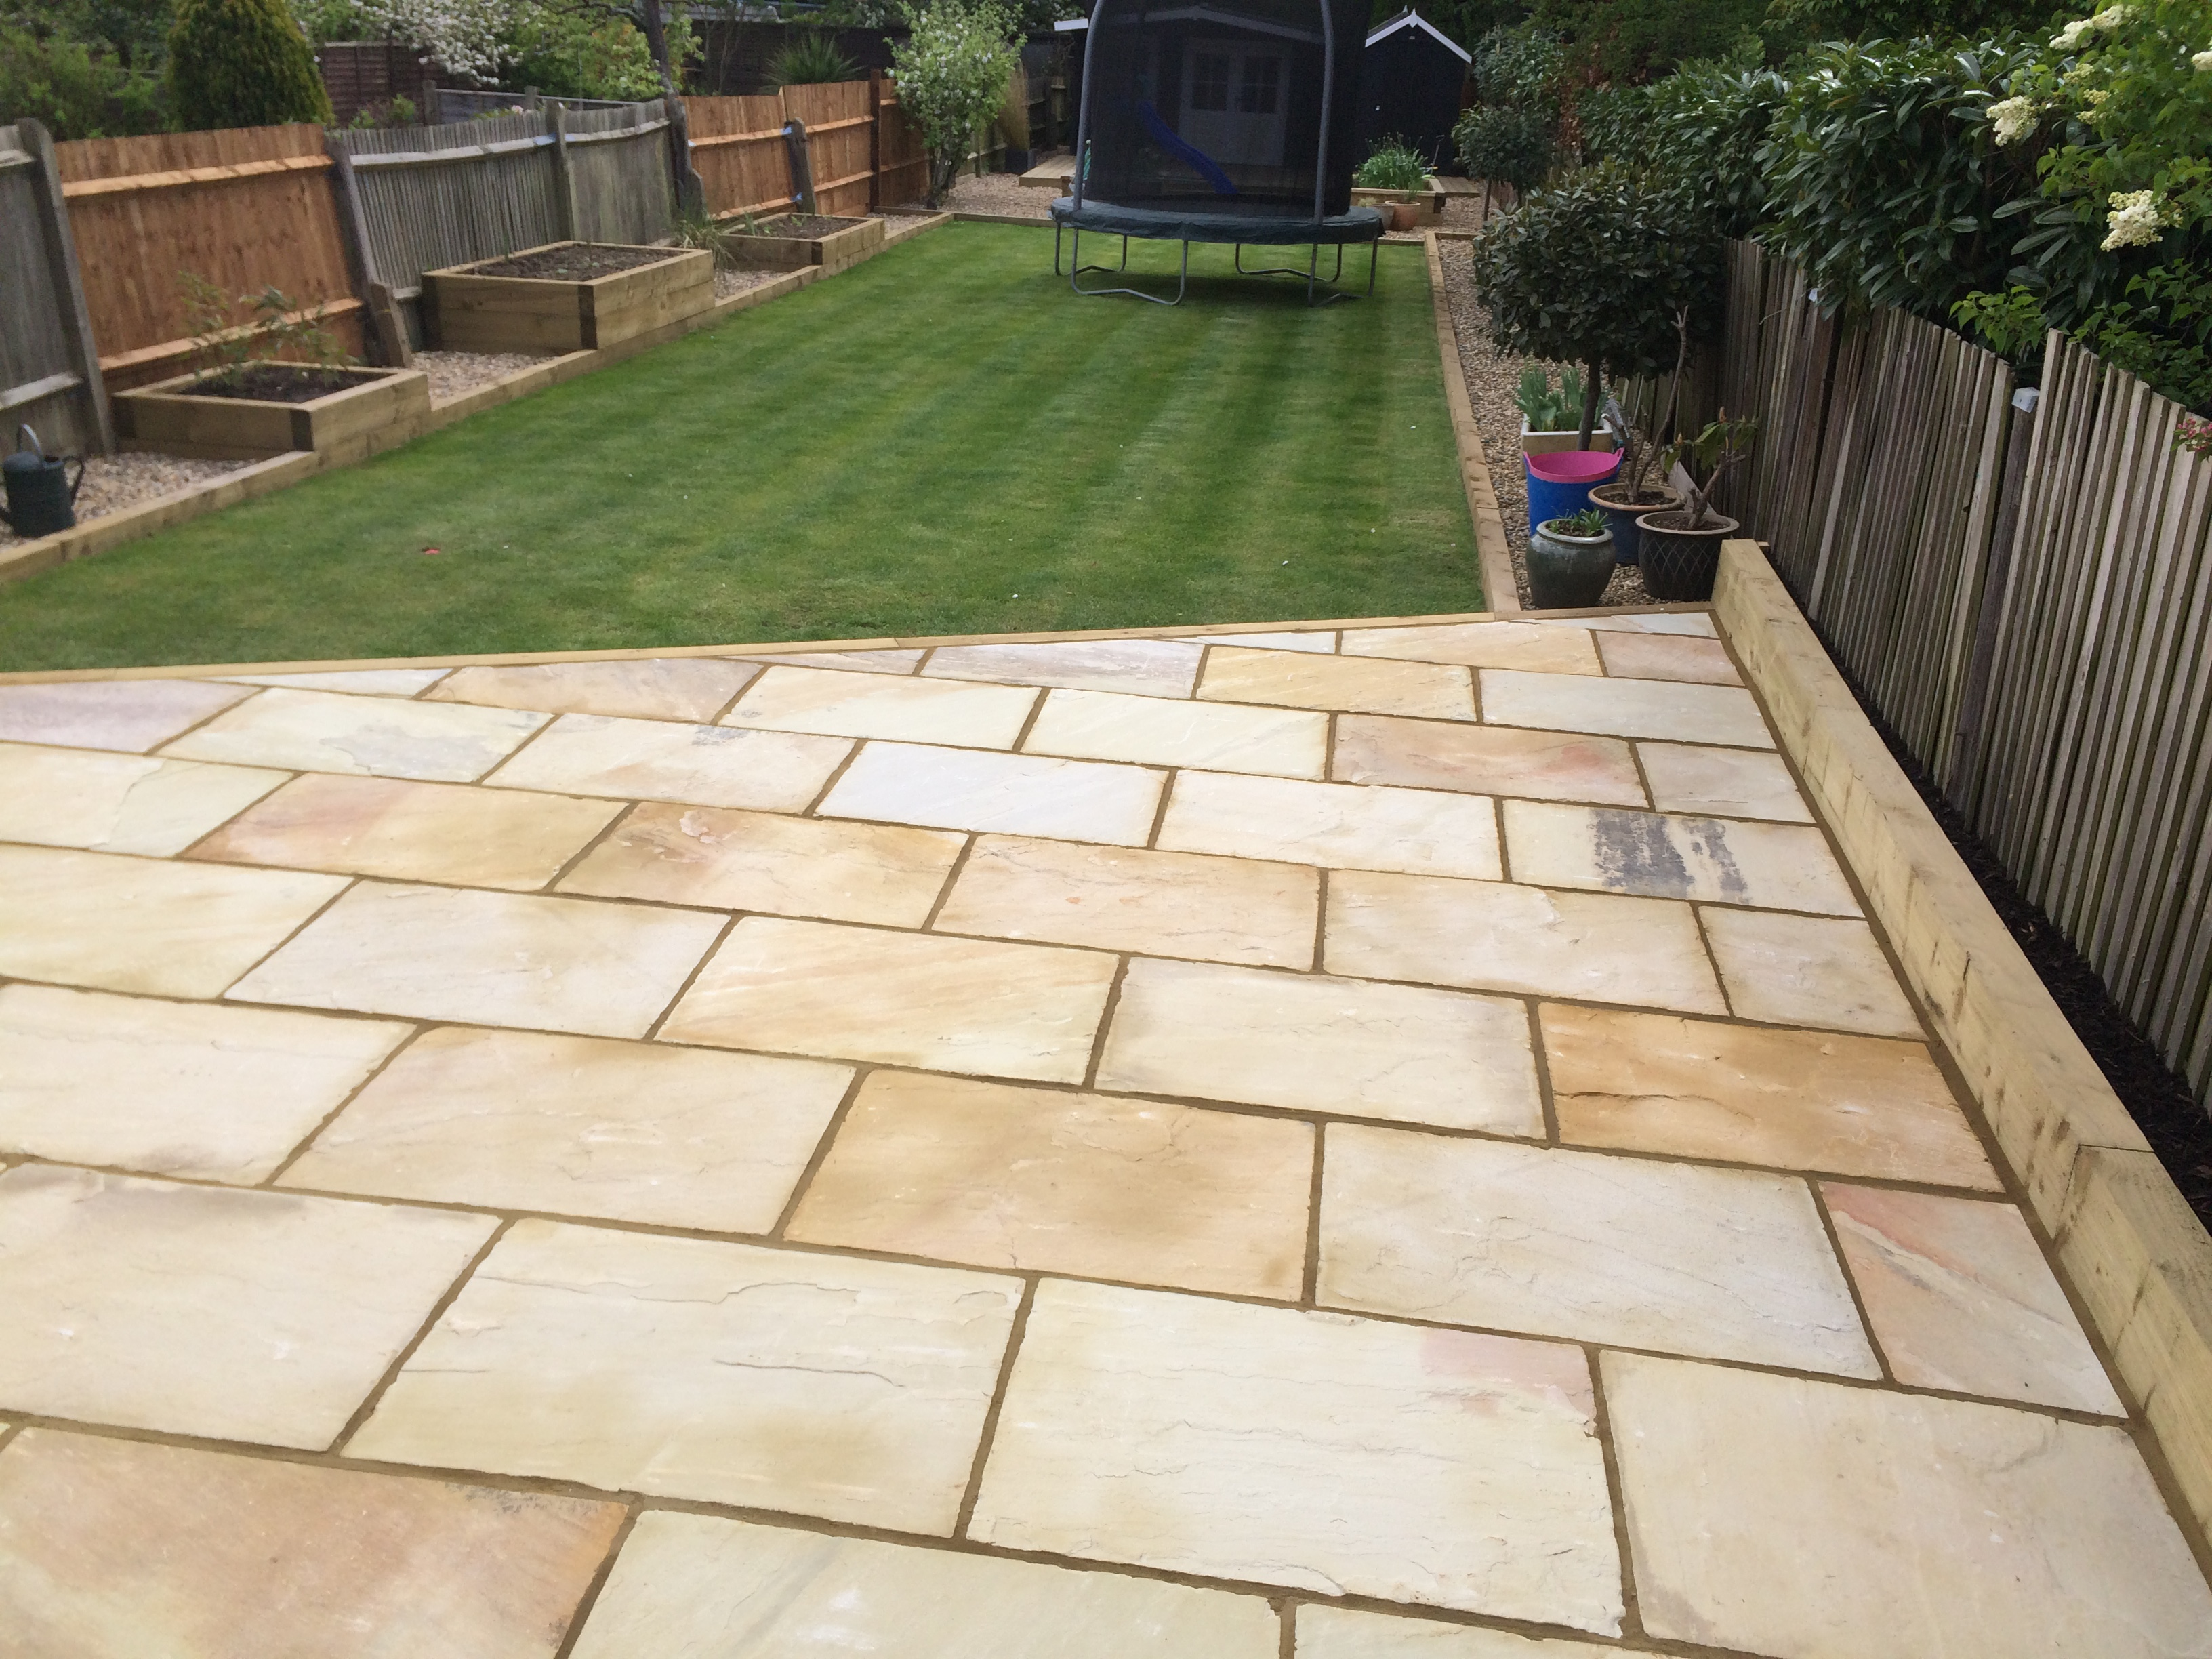 Patio, Lawn and Decking